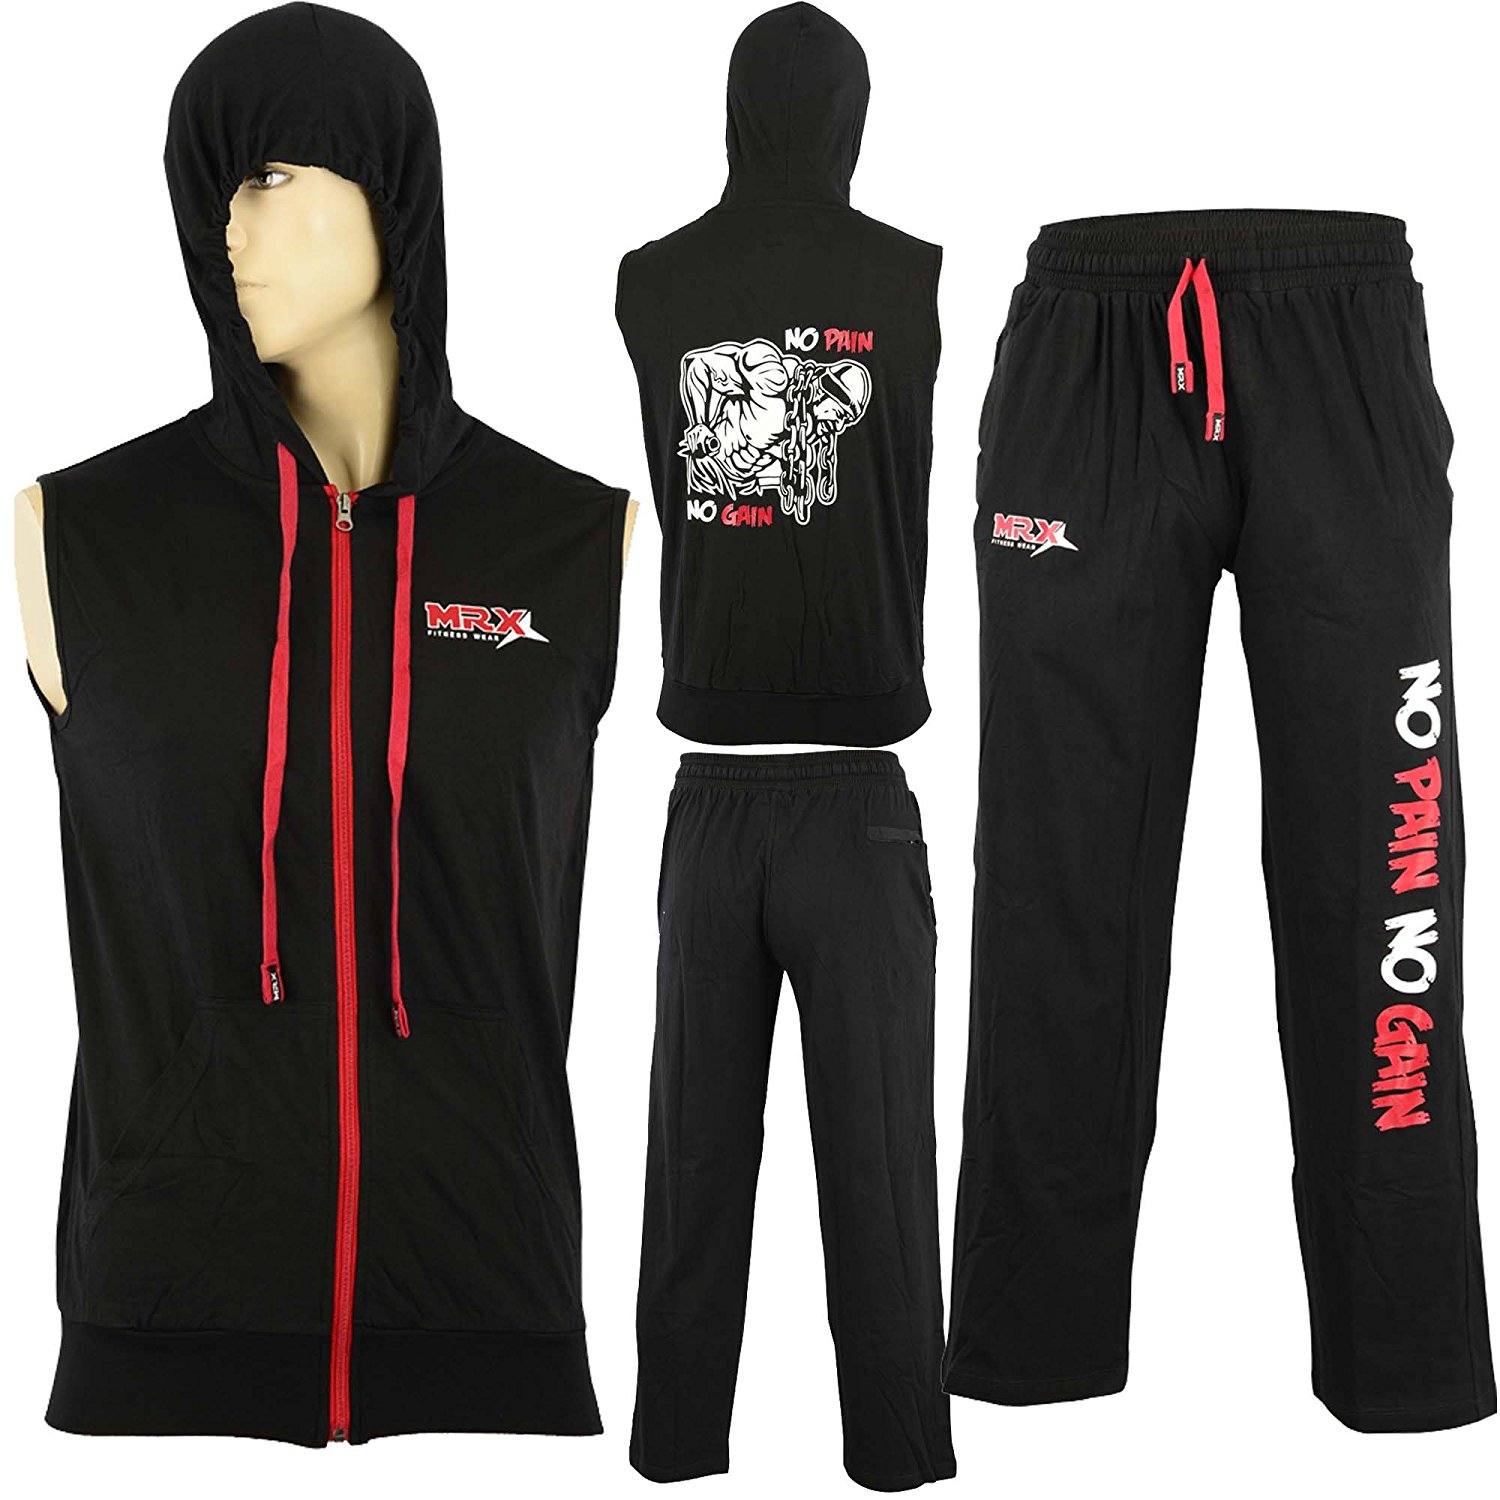 MRX BOXING & FITNESS MRX Mens Sleeveless Hoodie Zipper with Gym Sweat Pant Set Black & Red